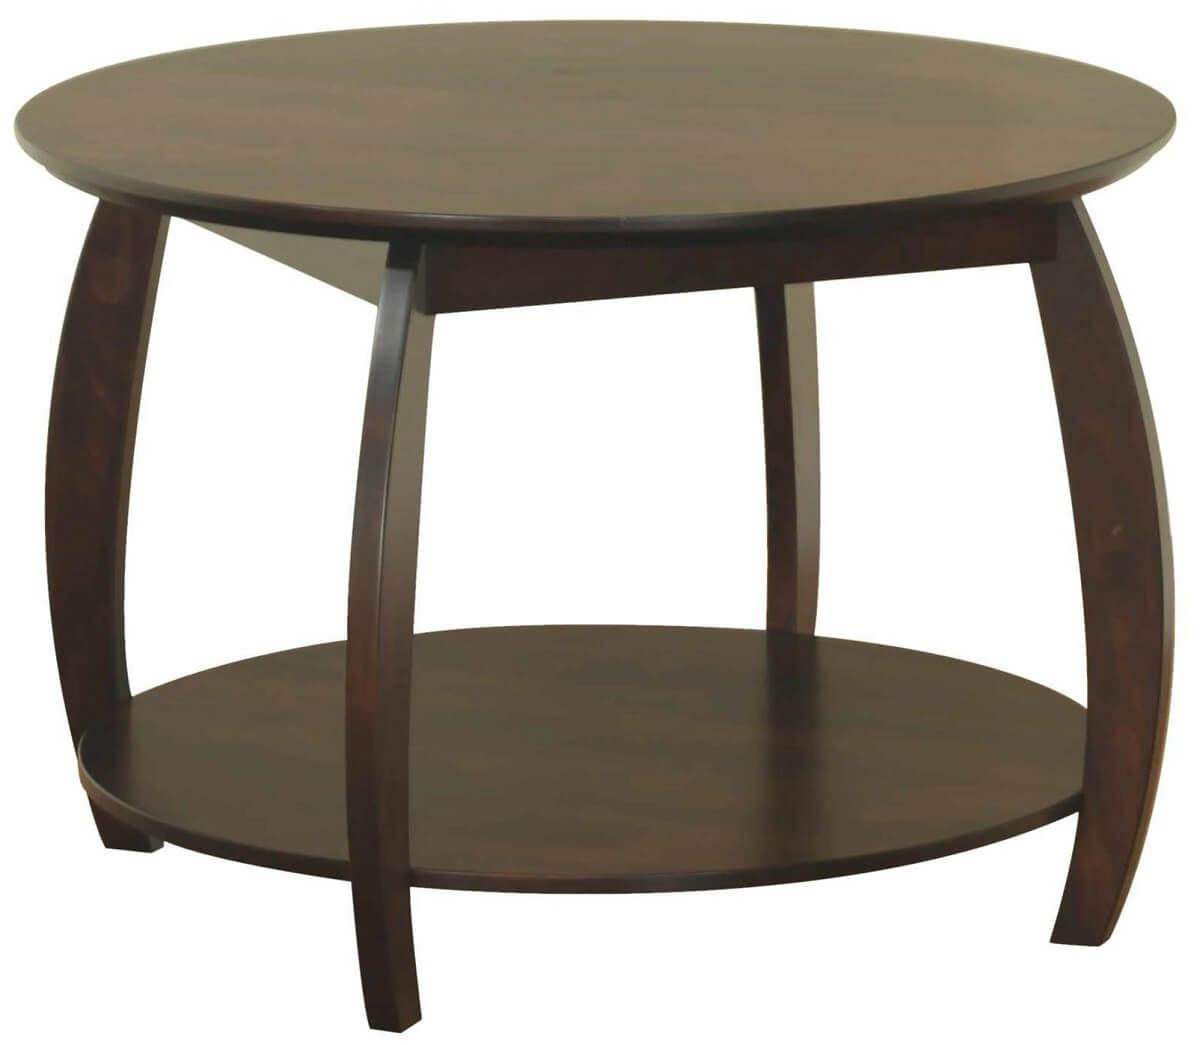 Bromley Round Console Table in Brown Maple